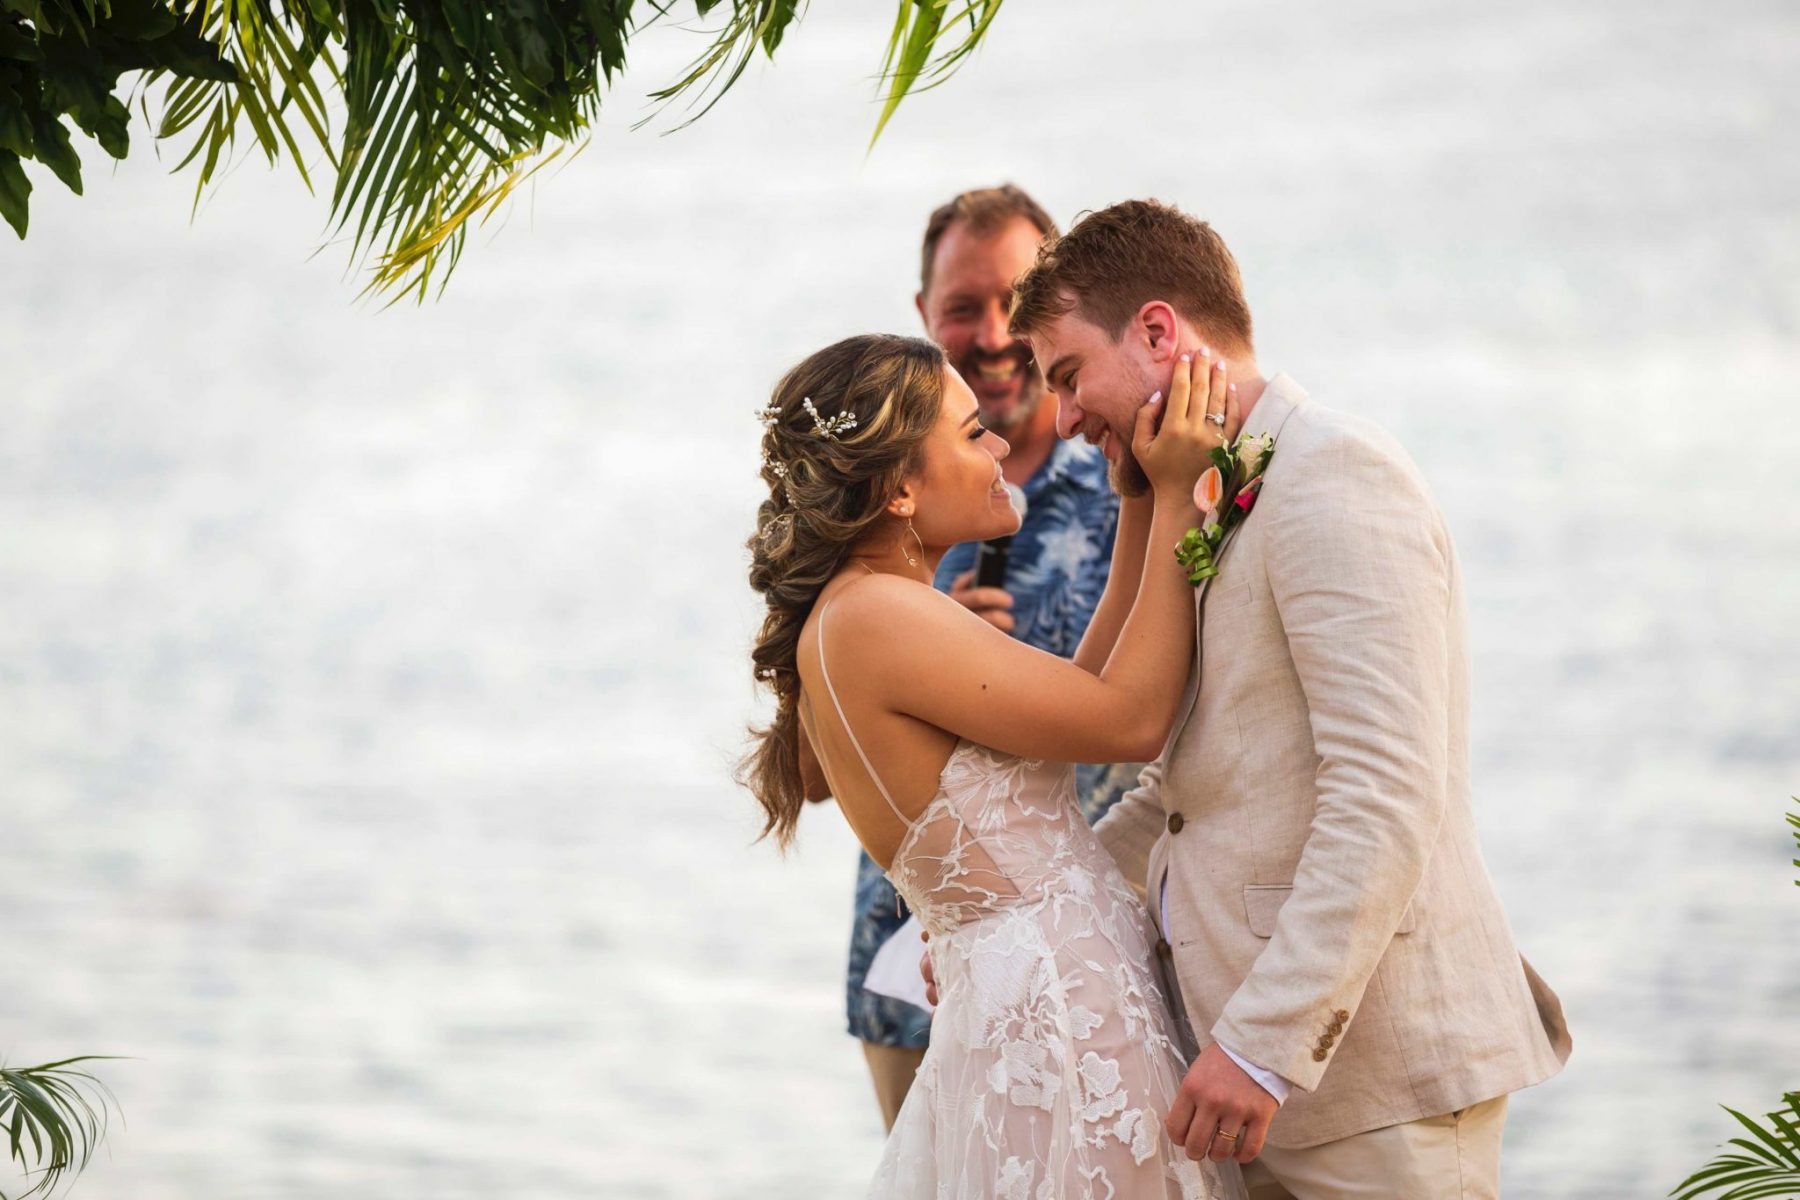 Fiji Weddings 2020 - Header Image